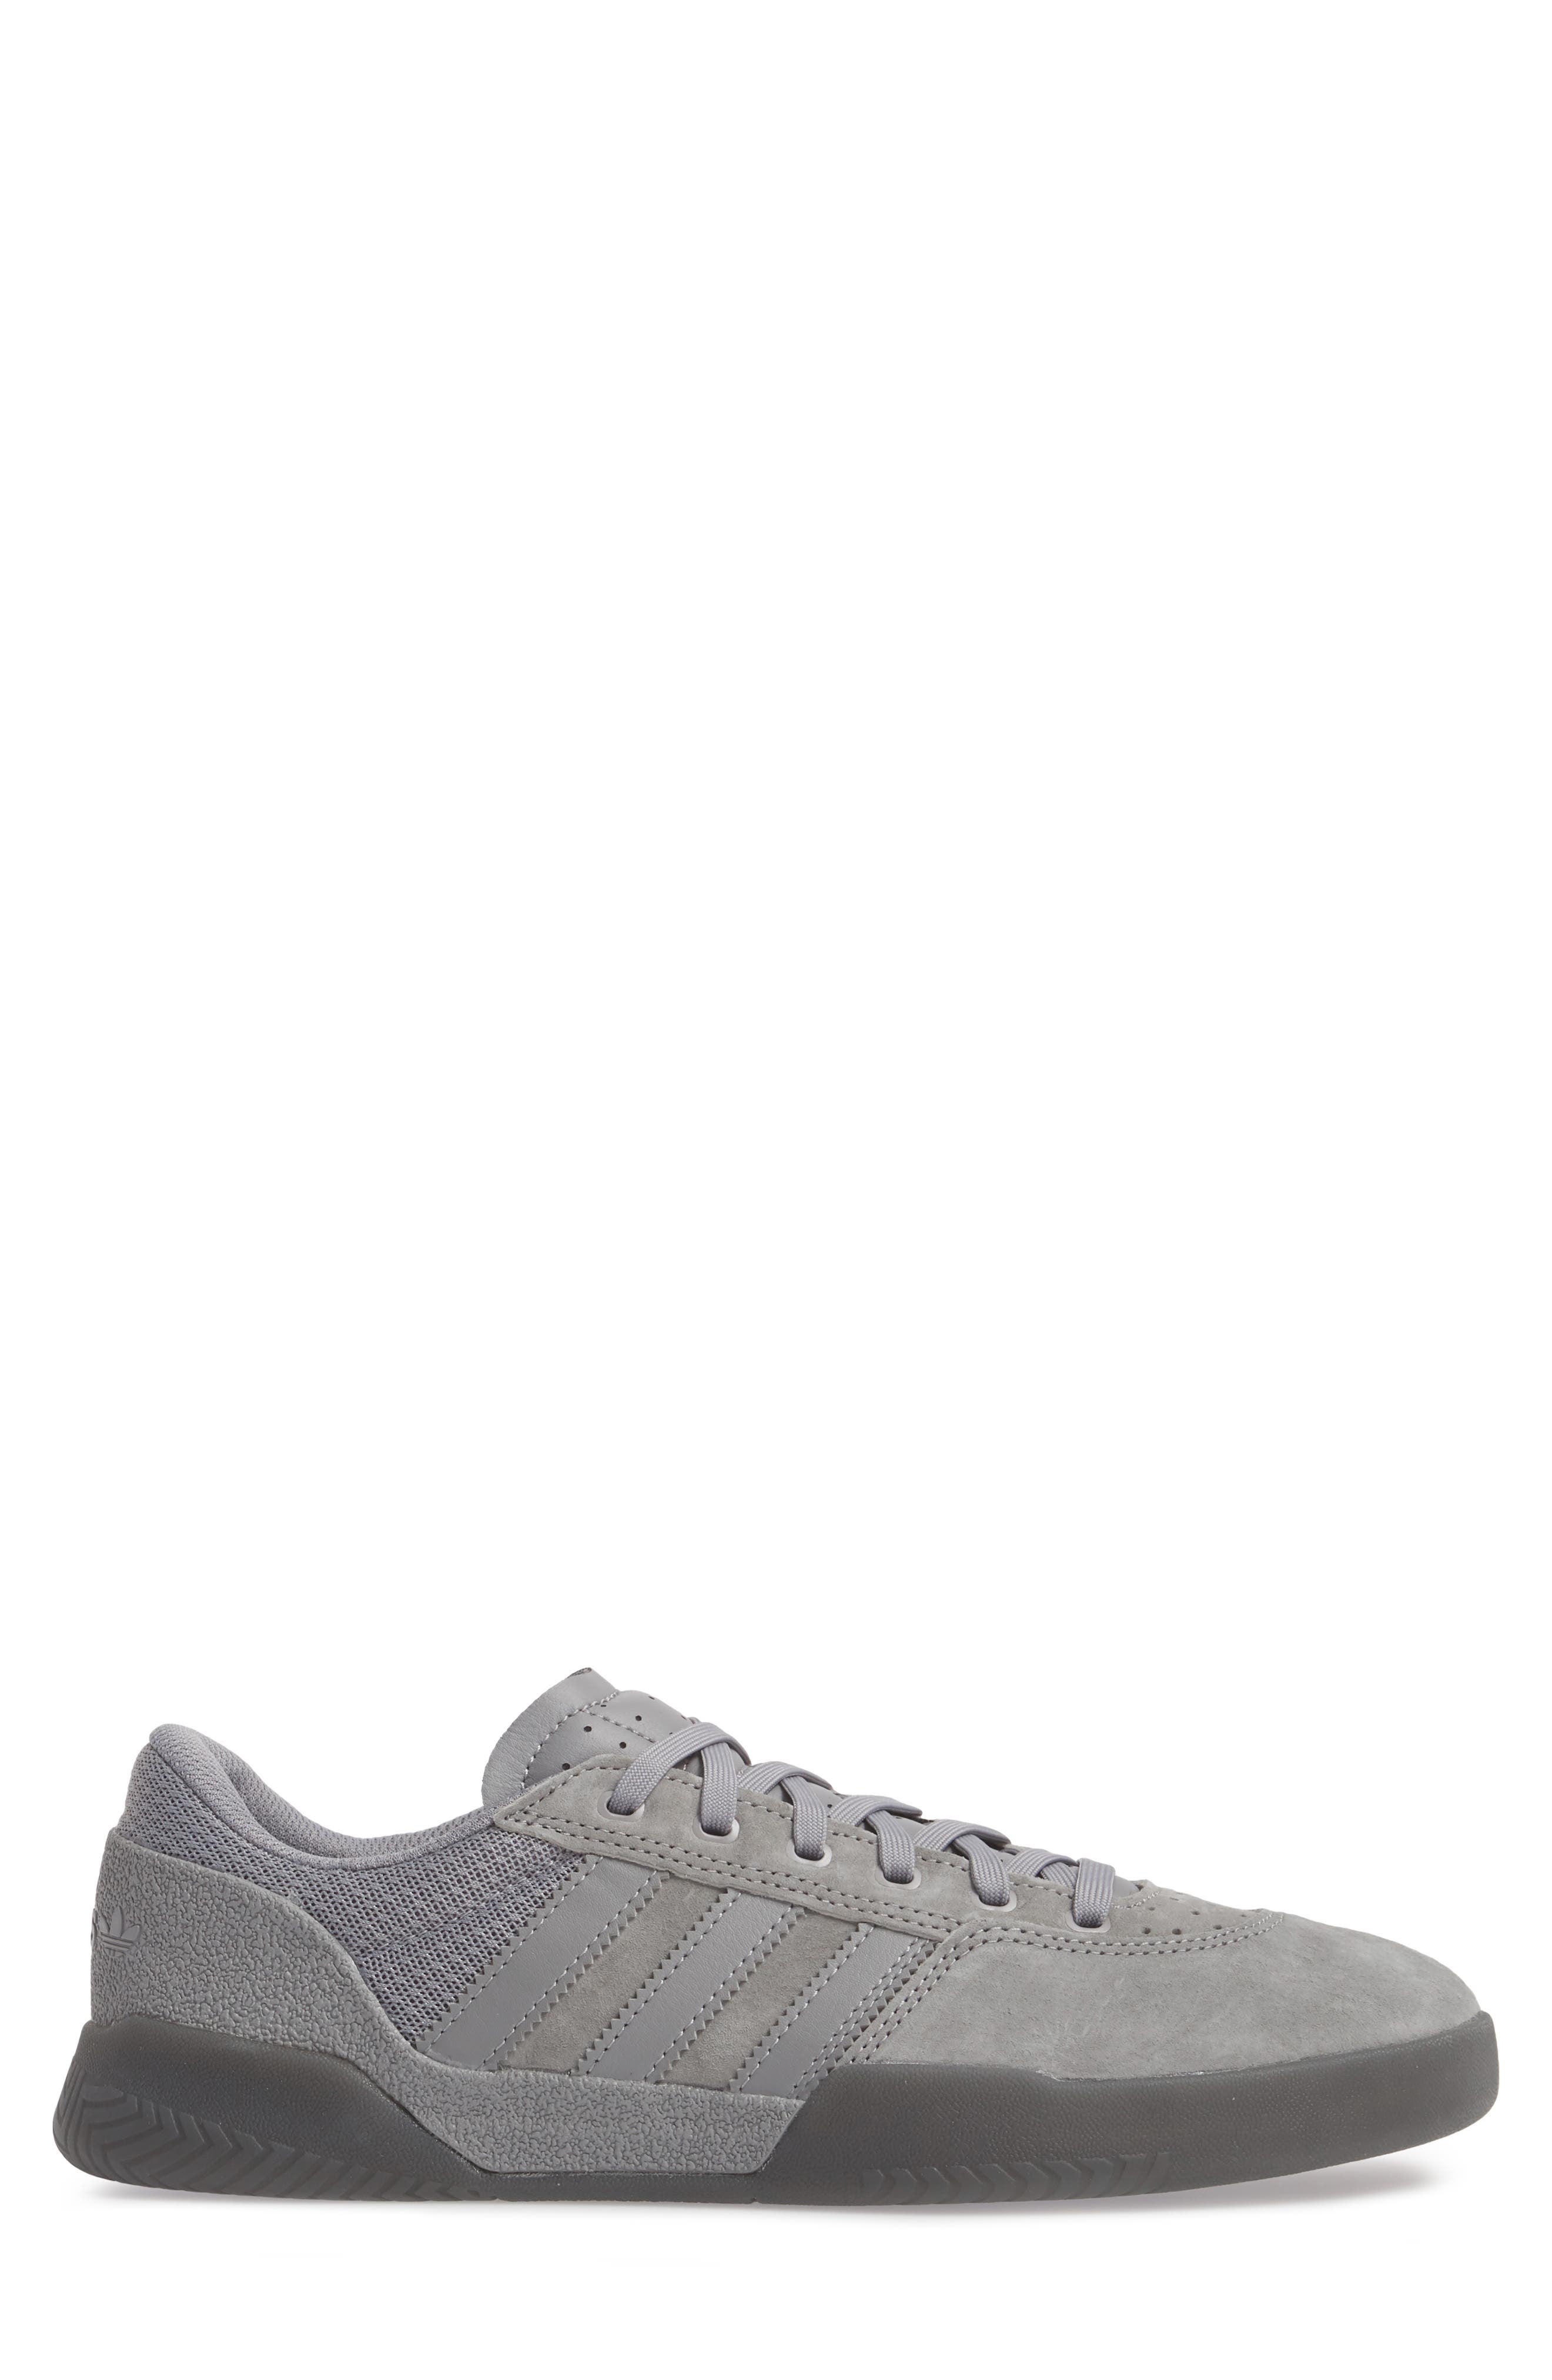 City Cup Sneaker,                             Alternate thumbnail 3, color,                             Grey/ Gold